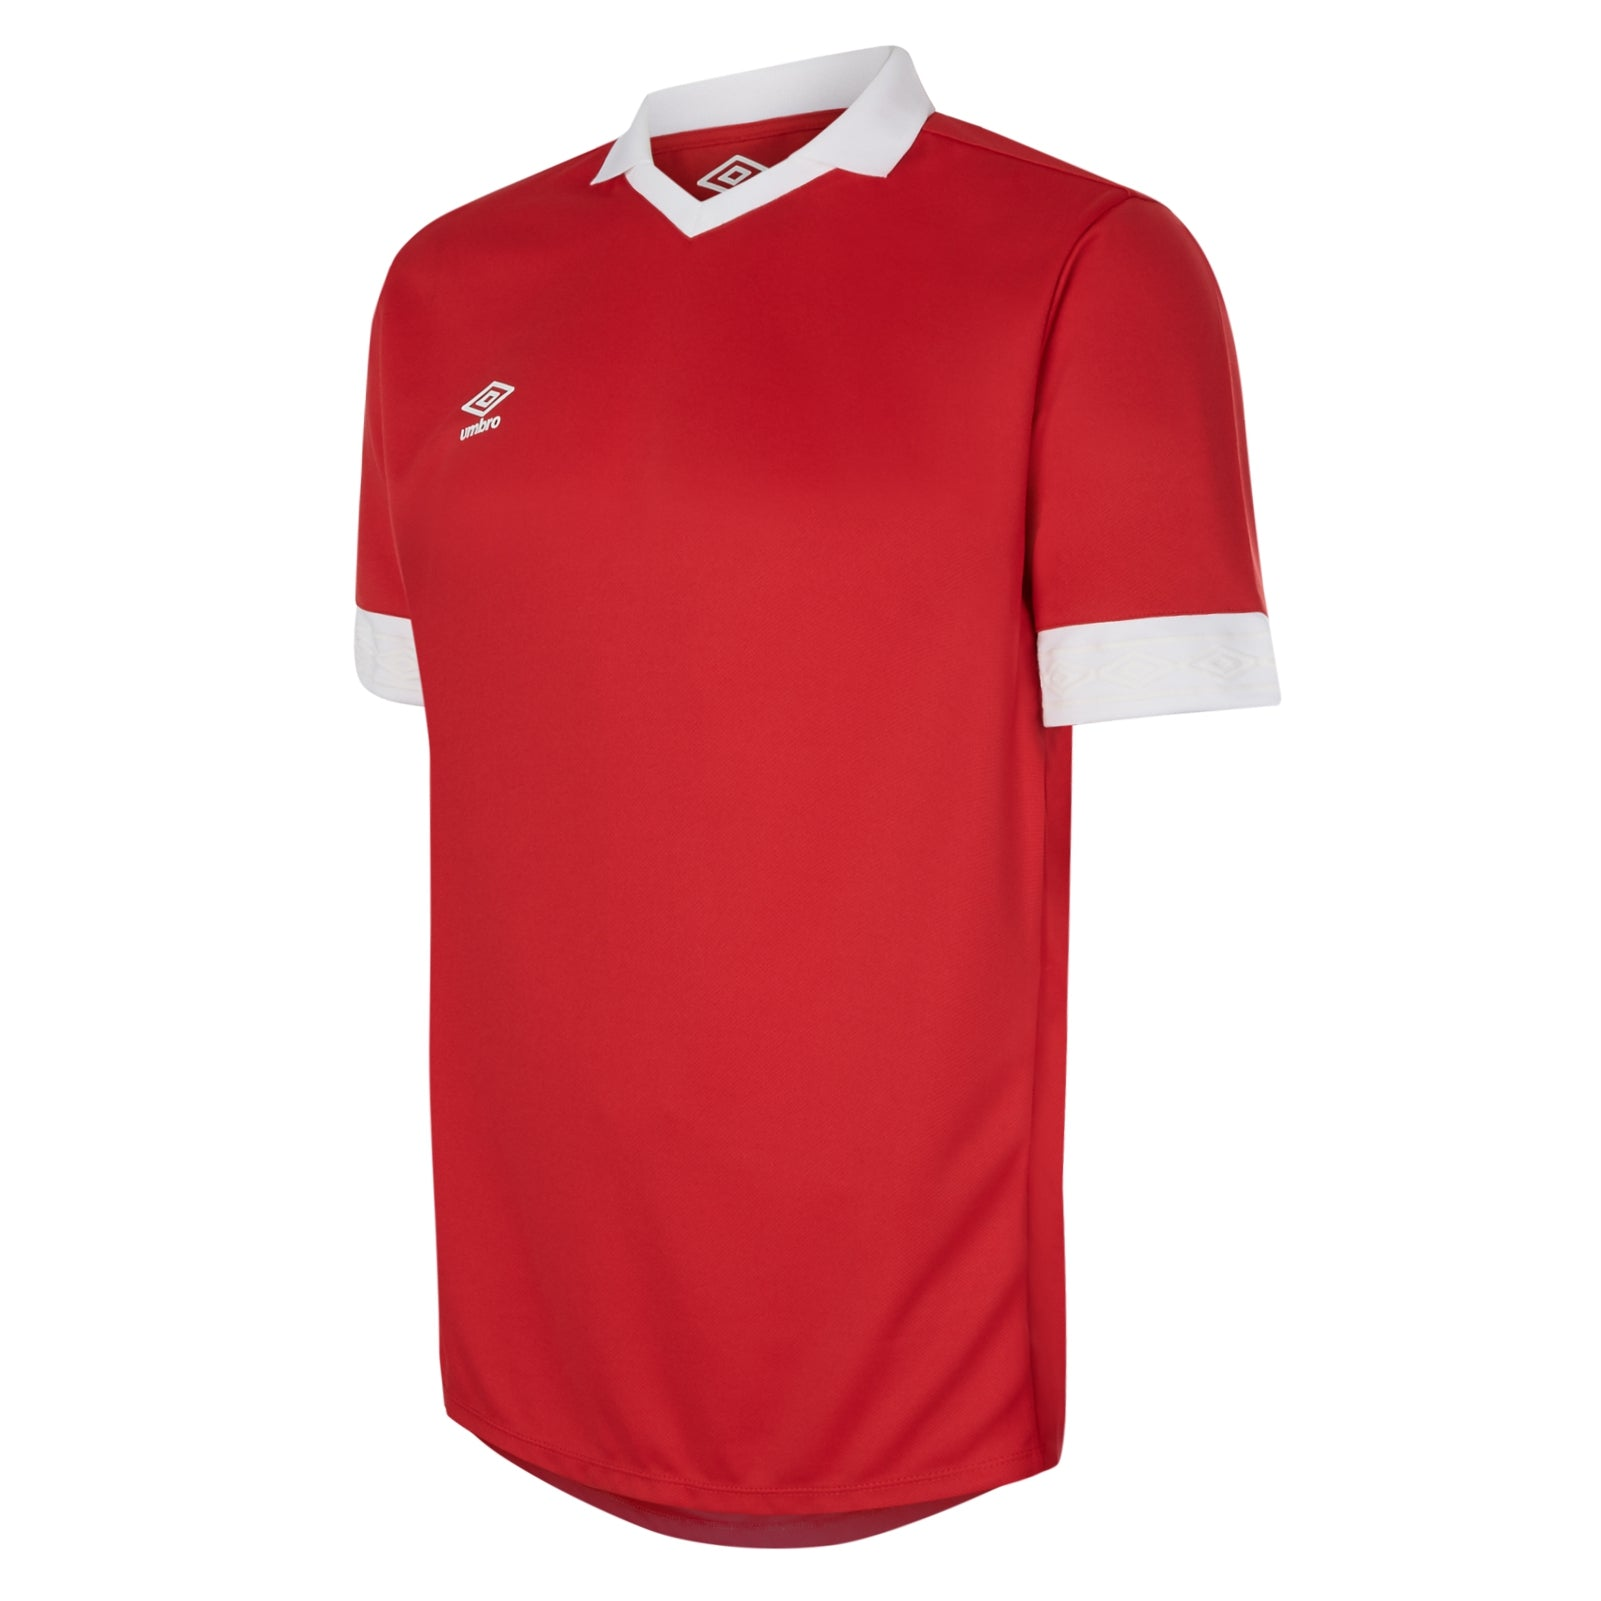 Umbro Tempest jersey short sleeve in red with contrast white collar and cuff